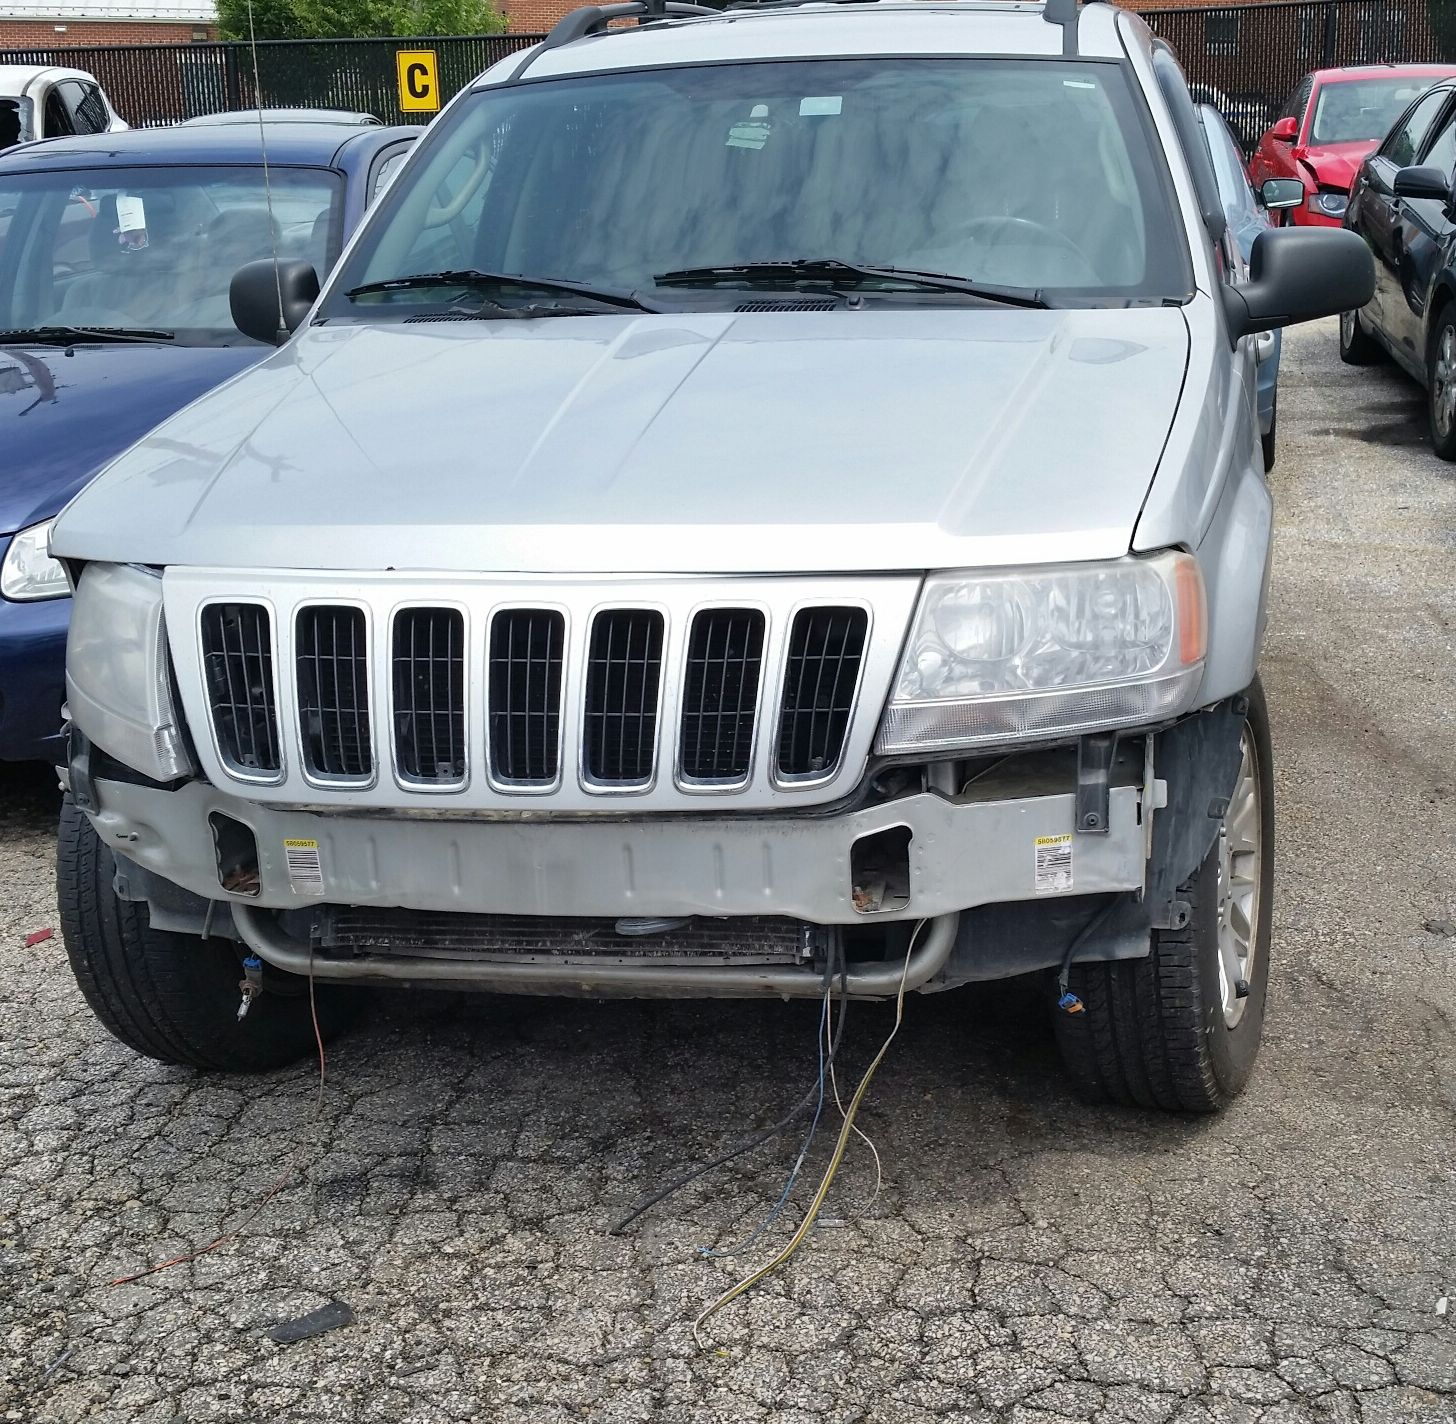 Click image for larger version  Name:Walts Jeep.jpg Views:175 Size:472.3 KB ID:68908